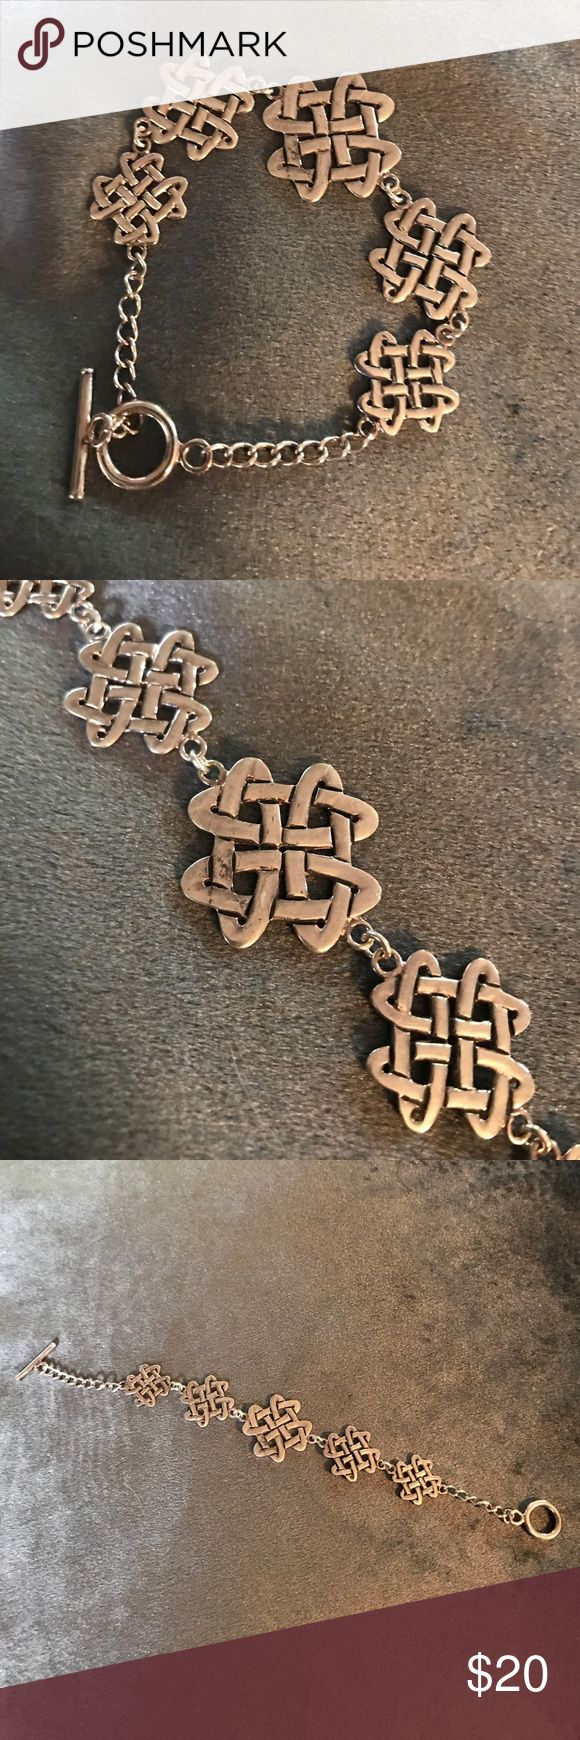 ☘️Silver Celtic Knot Bracelet ☘️ ❤️Bracelet with 5 Celtic love knots and bar and ring toggle clasp ❤️ Jewelry Bracelets